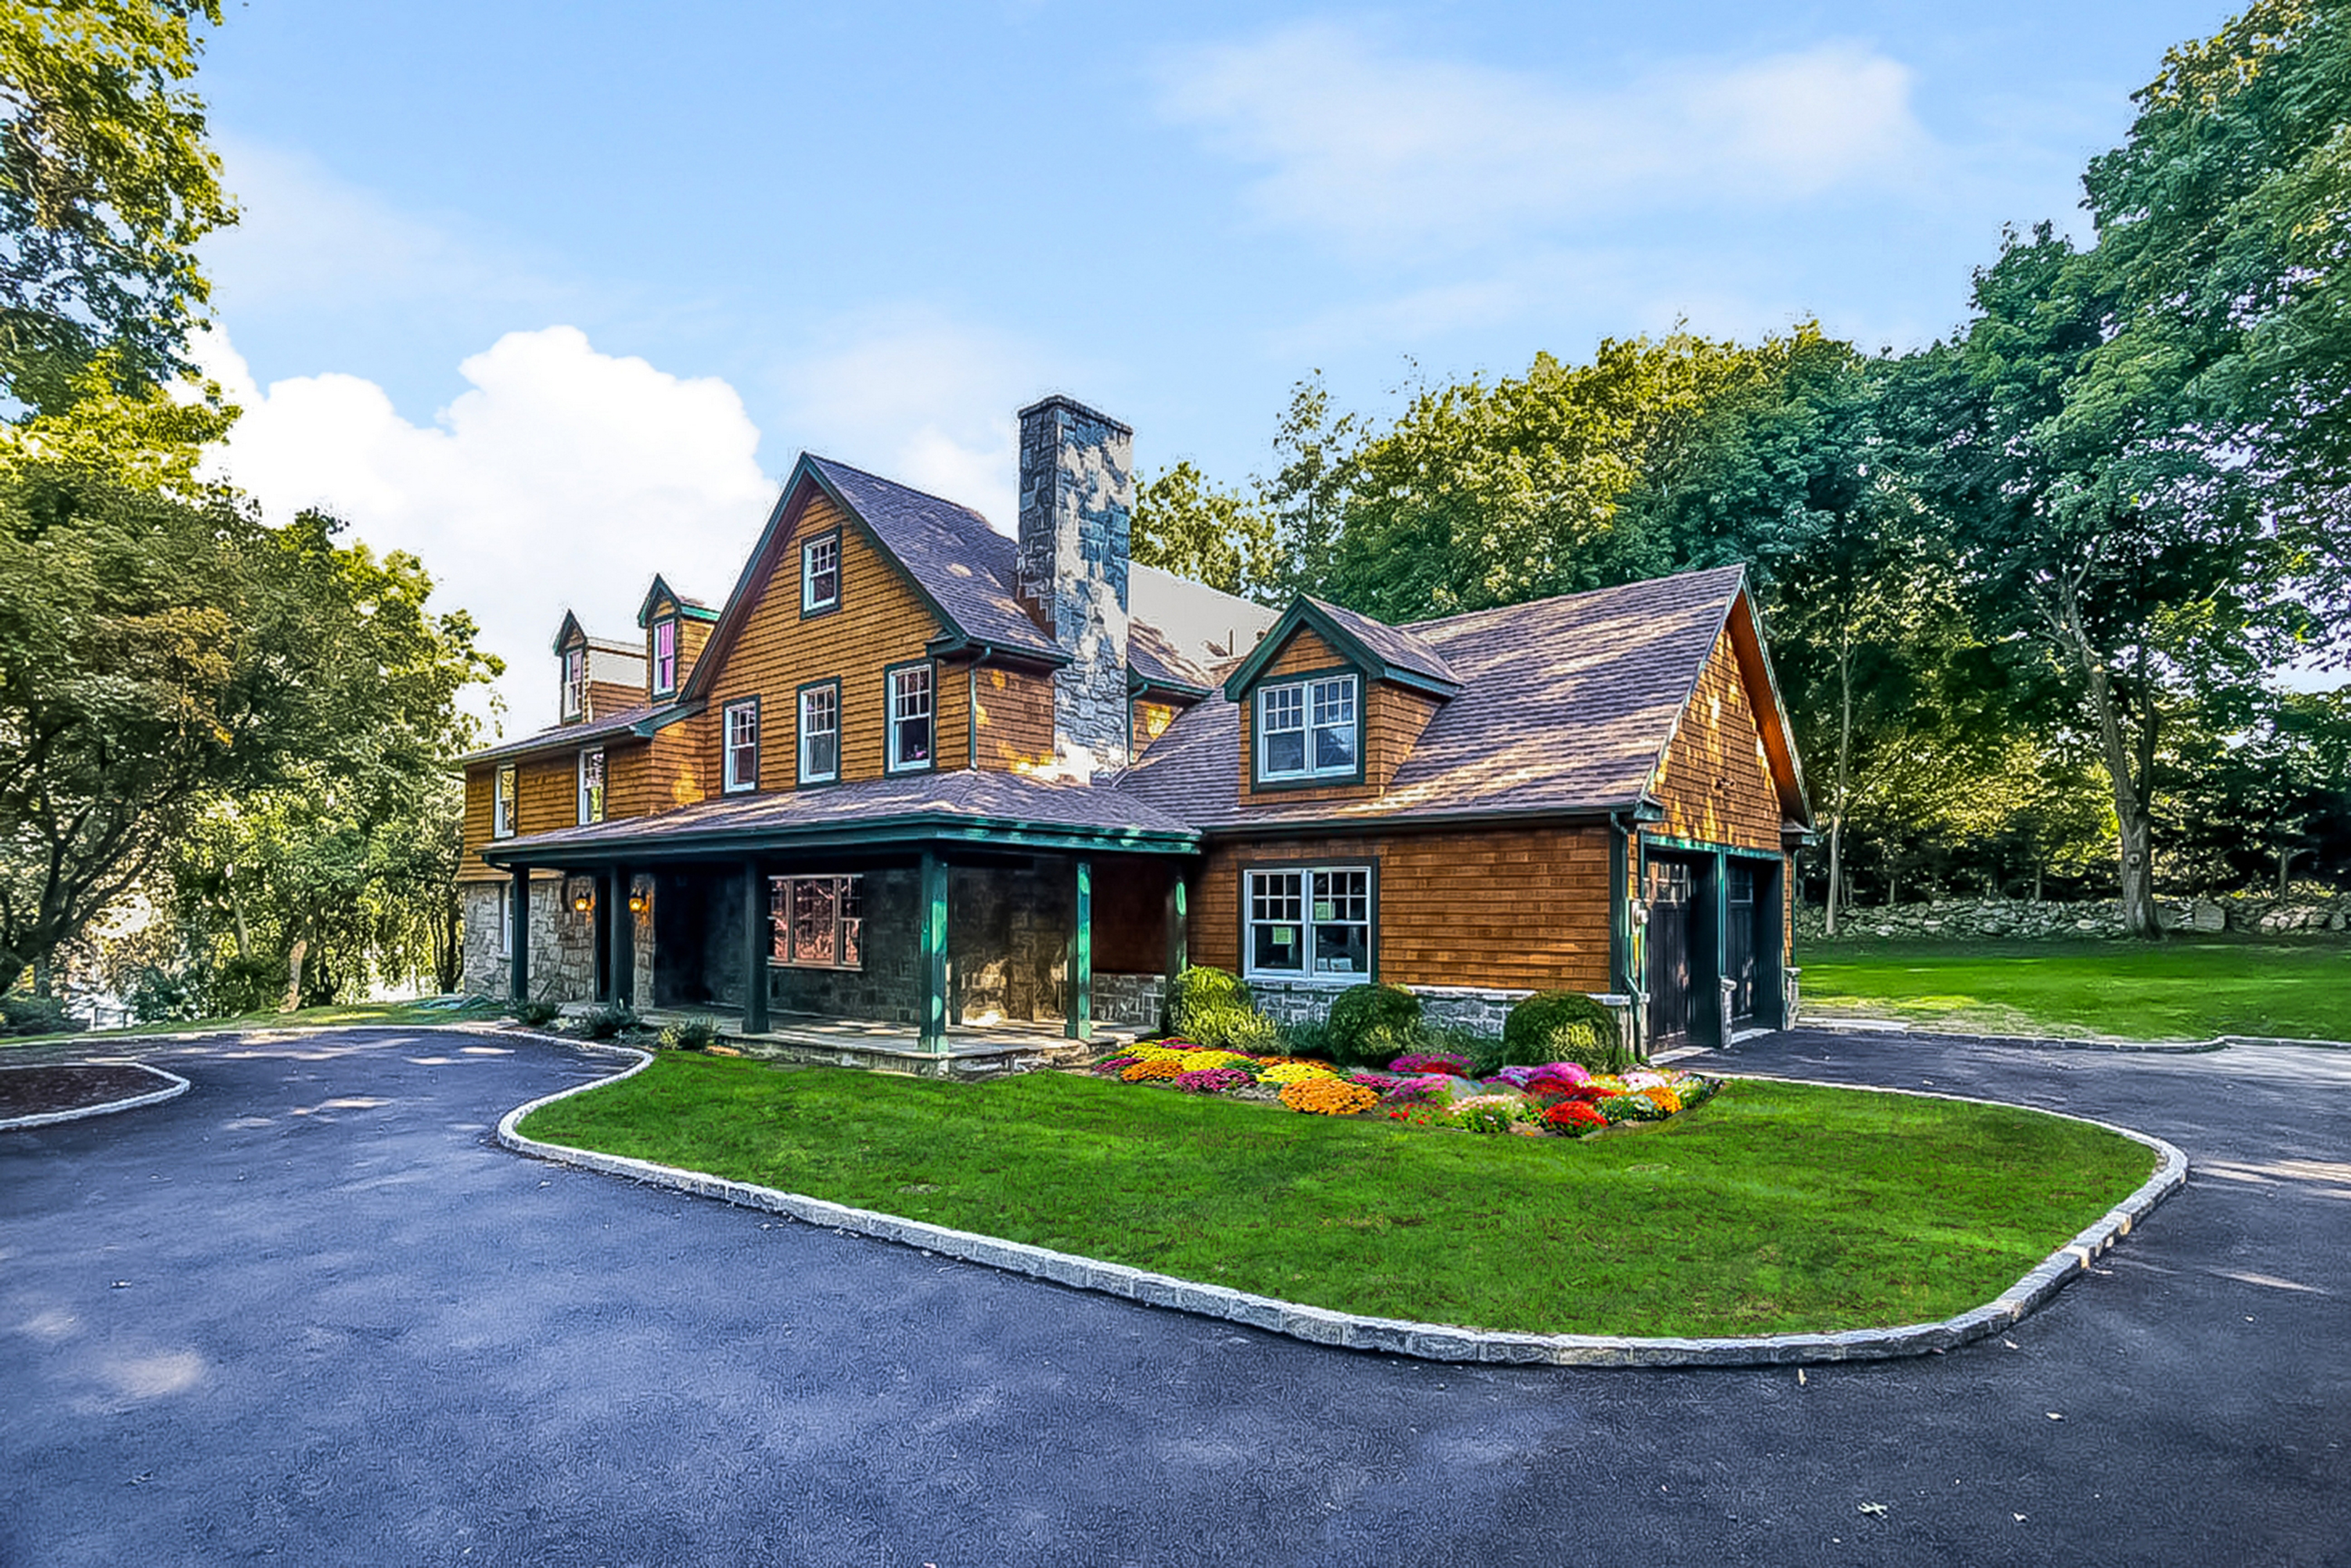 Single Family Home for Sale at 548 Anderson Hill Road Purchase, New York, 10577 United States